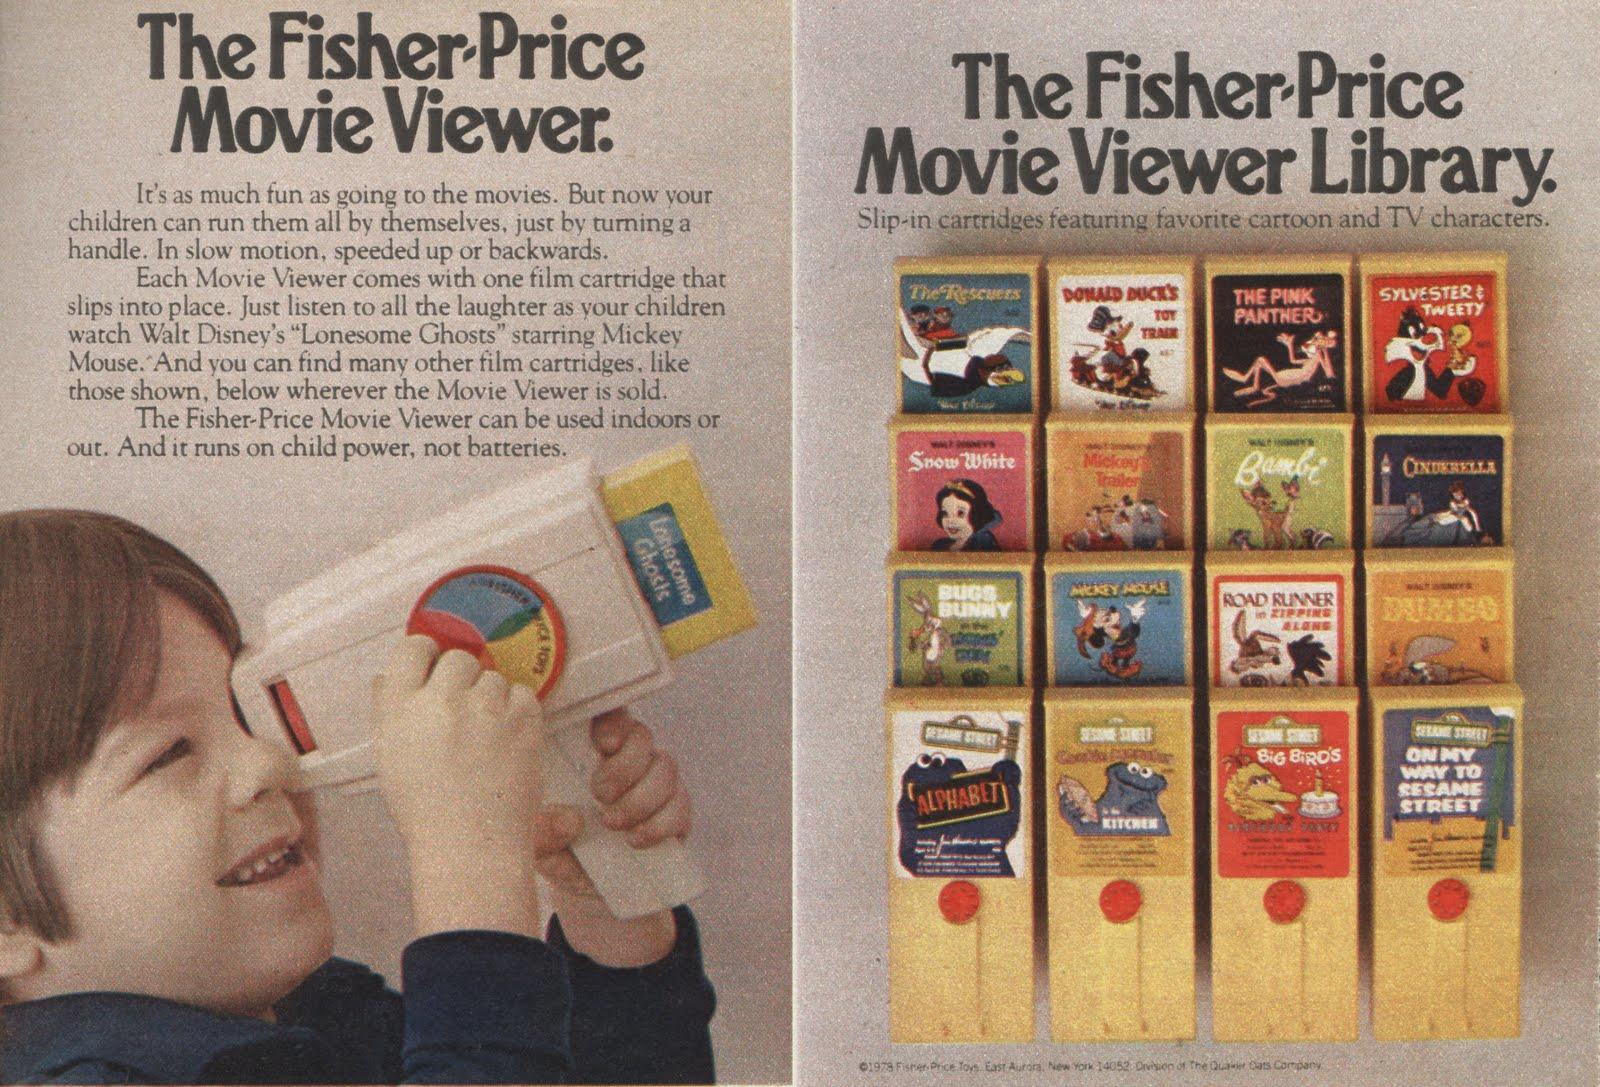 1978 Fisher-Price Movie Viewer and Cartridges 2 1/4 page advertisements.